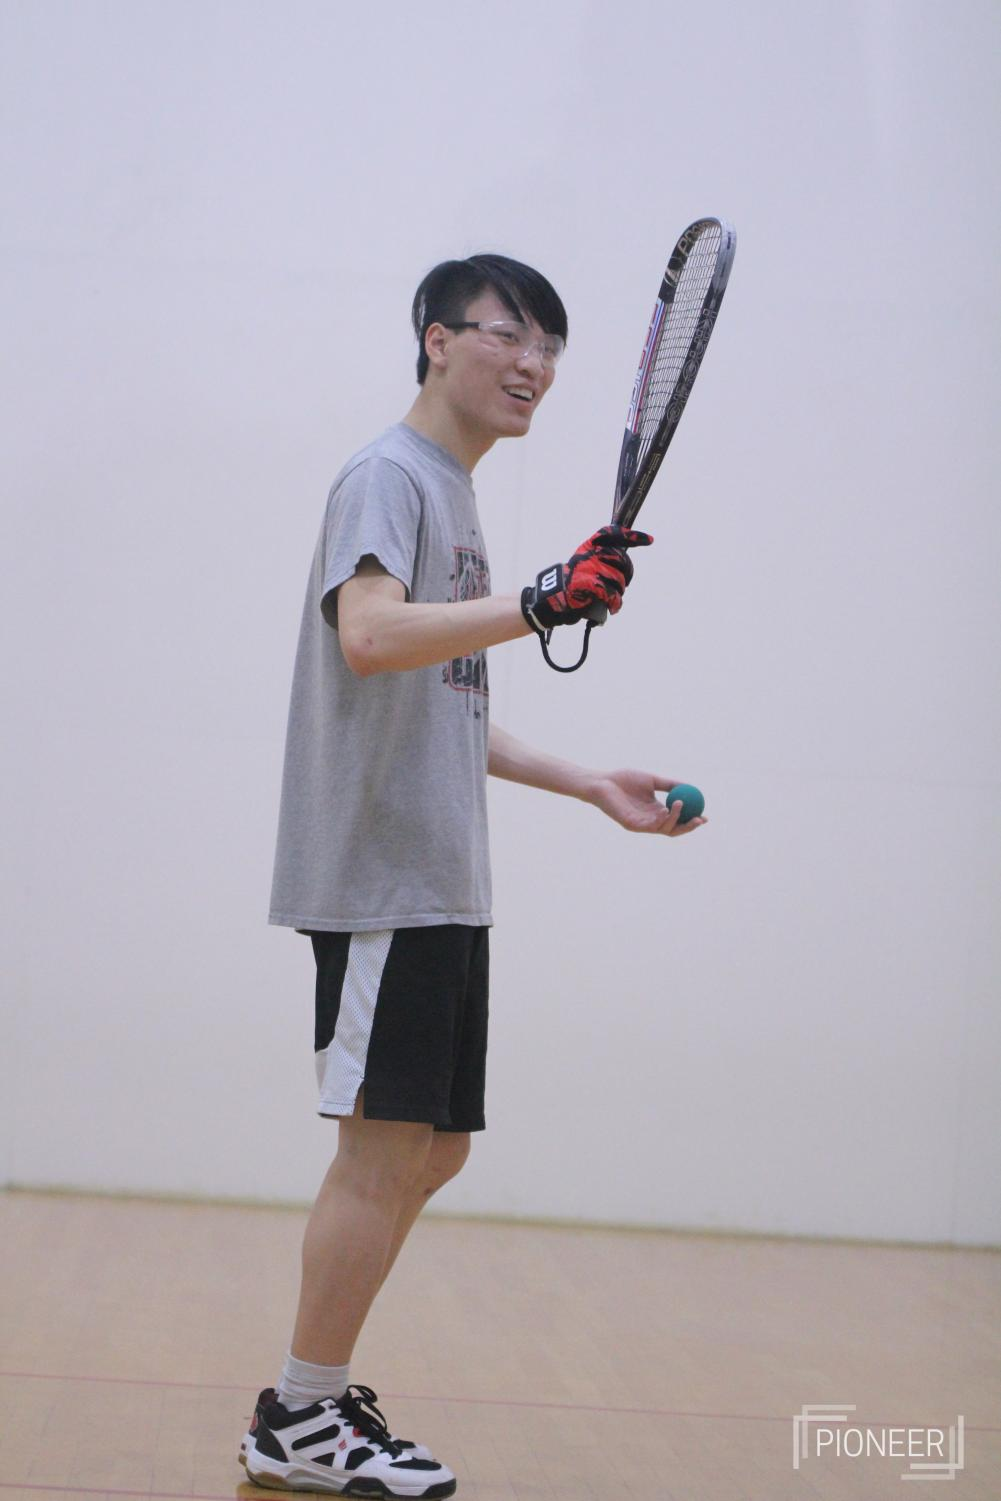 Lifting+his+racket%2C+Liam+Justin%2C+senior%2C+prepares+to+serve+the+ball+at+racquetball+practice+Feb.+11.%0A